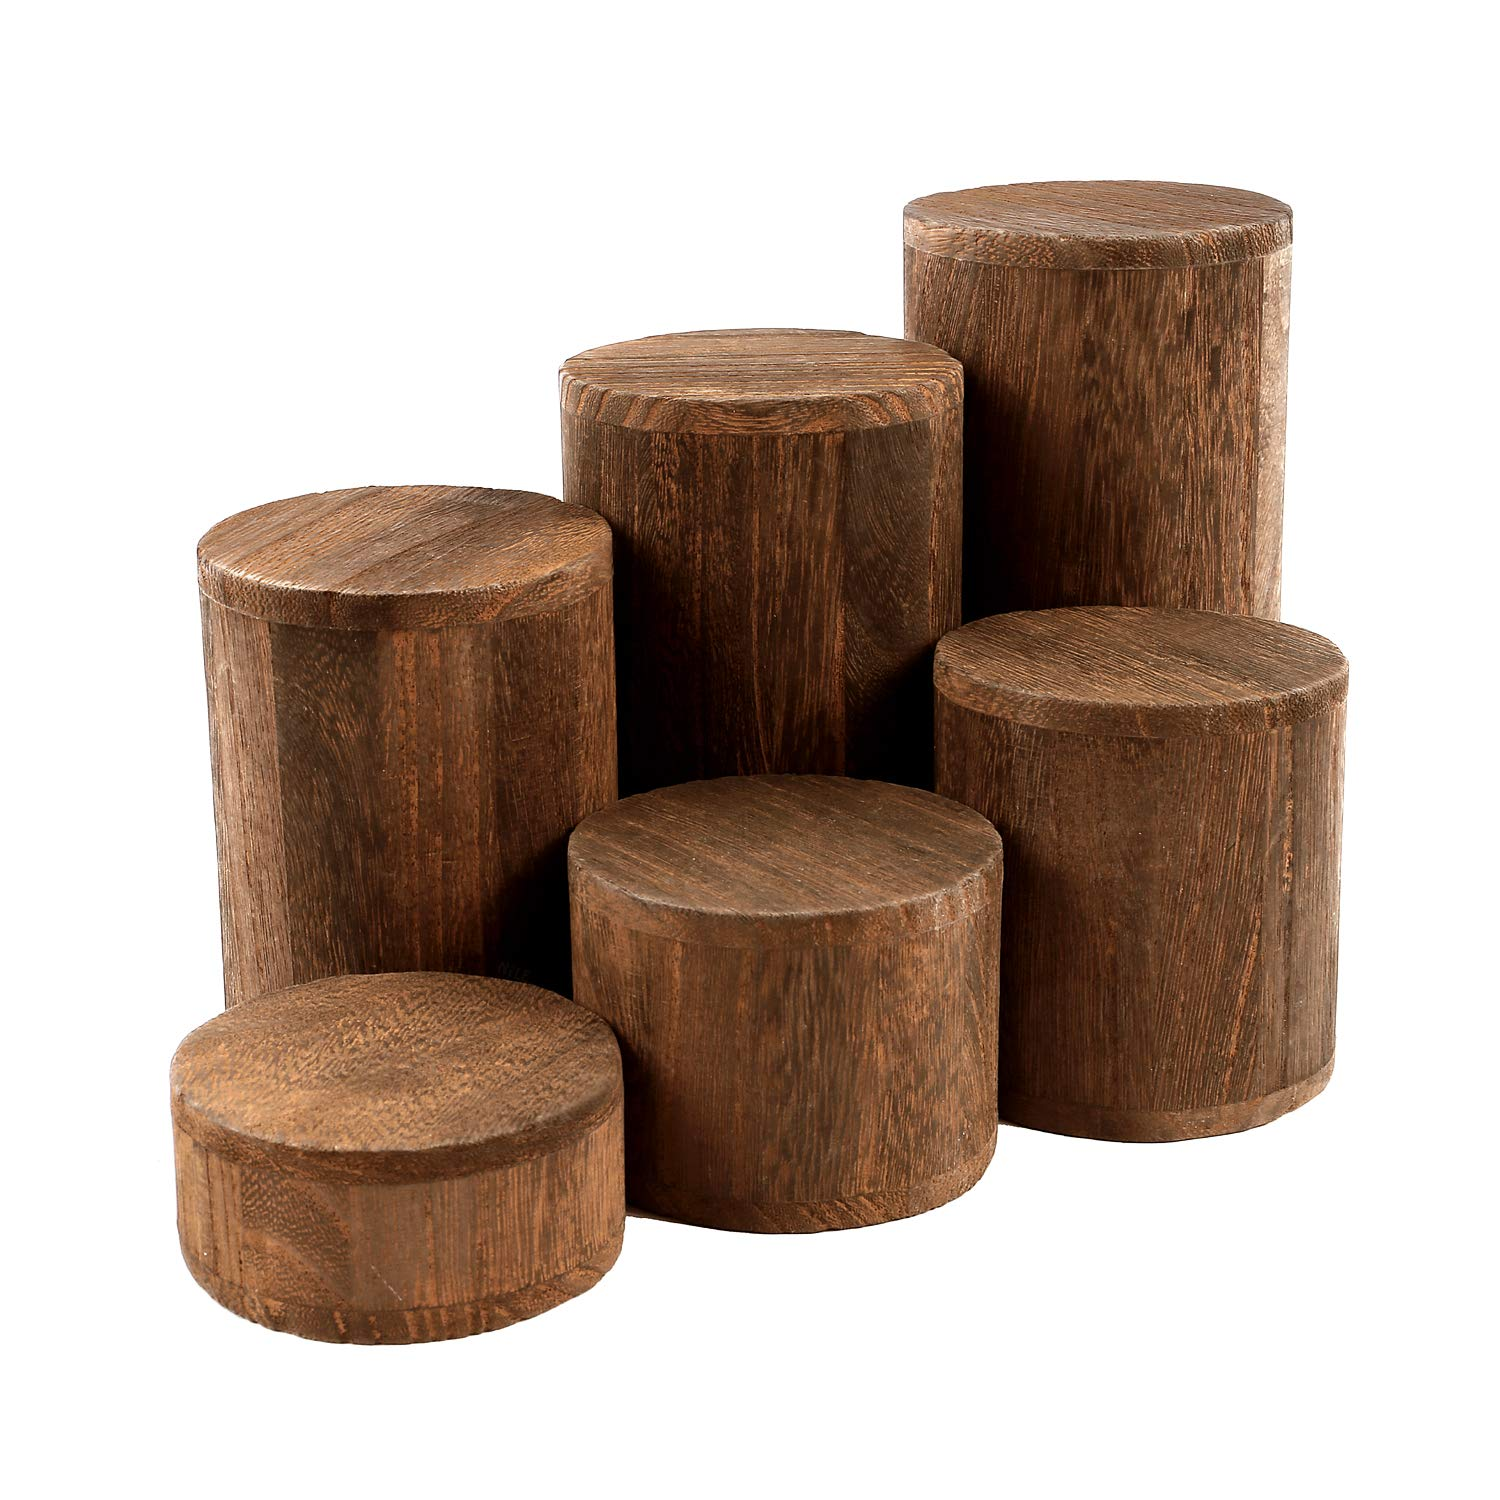 Mooca Wooden 6 Pcs Round Risers for Display Jewelry and Accessories Display Stand, Brown